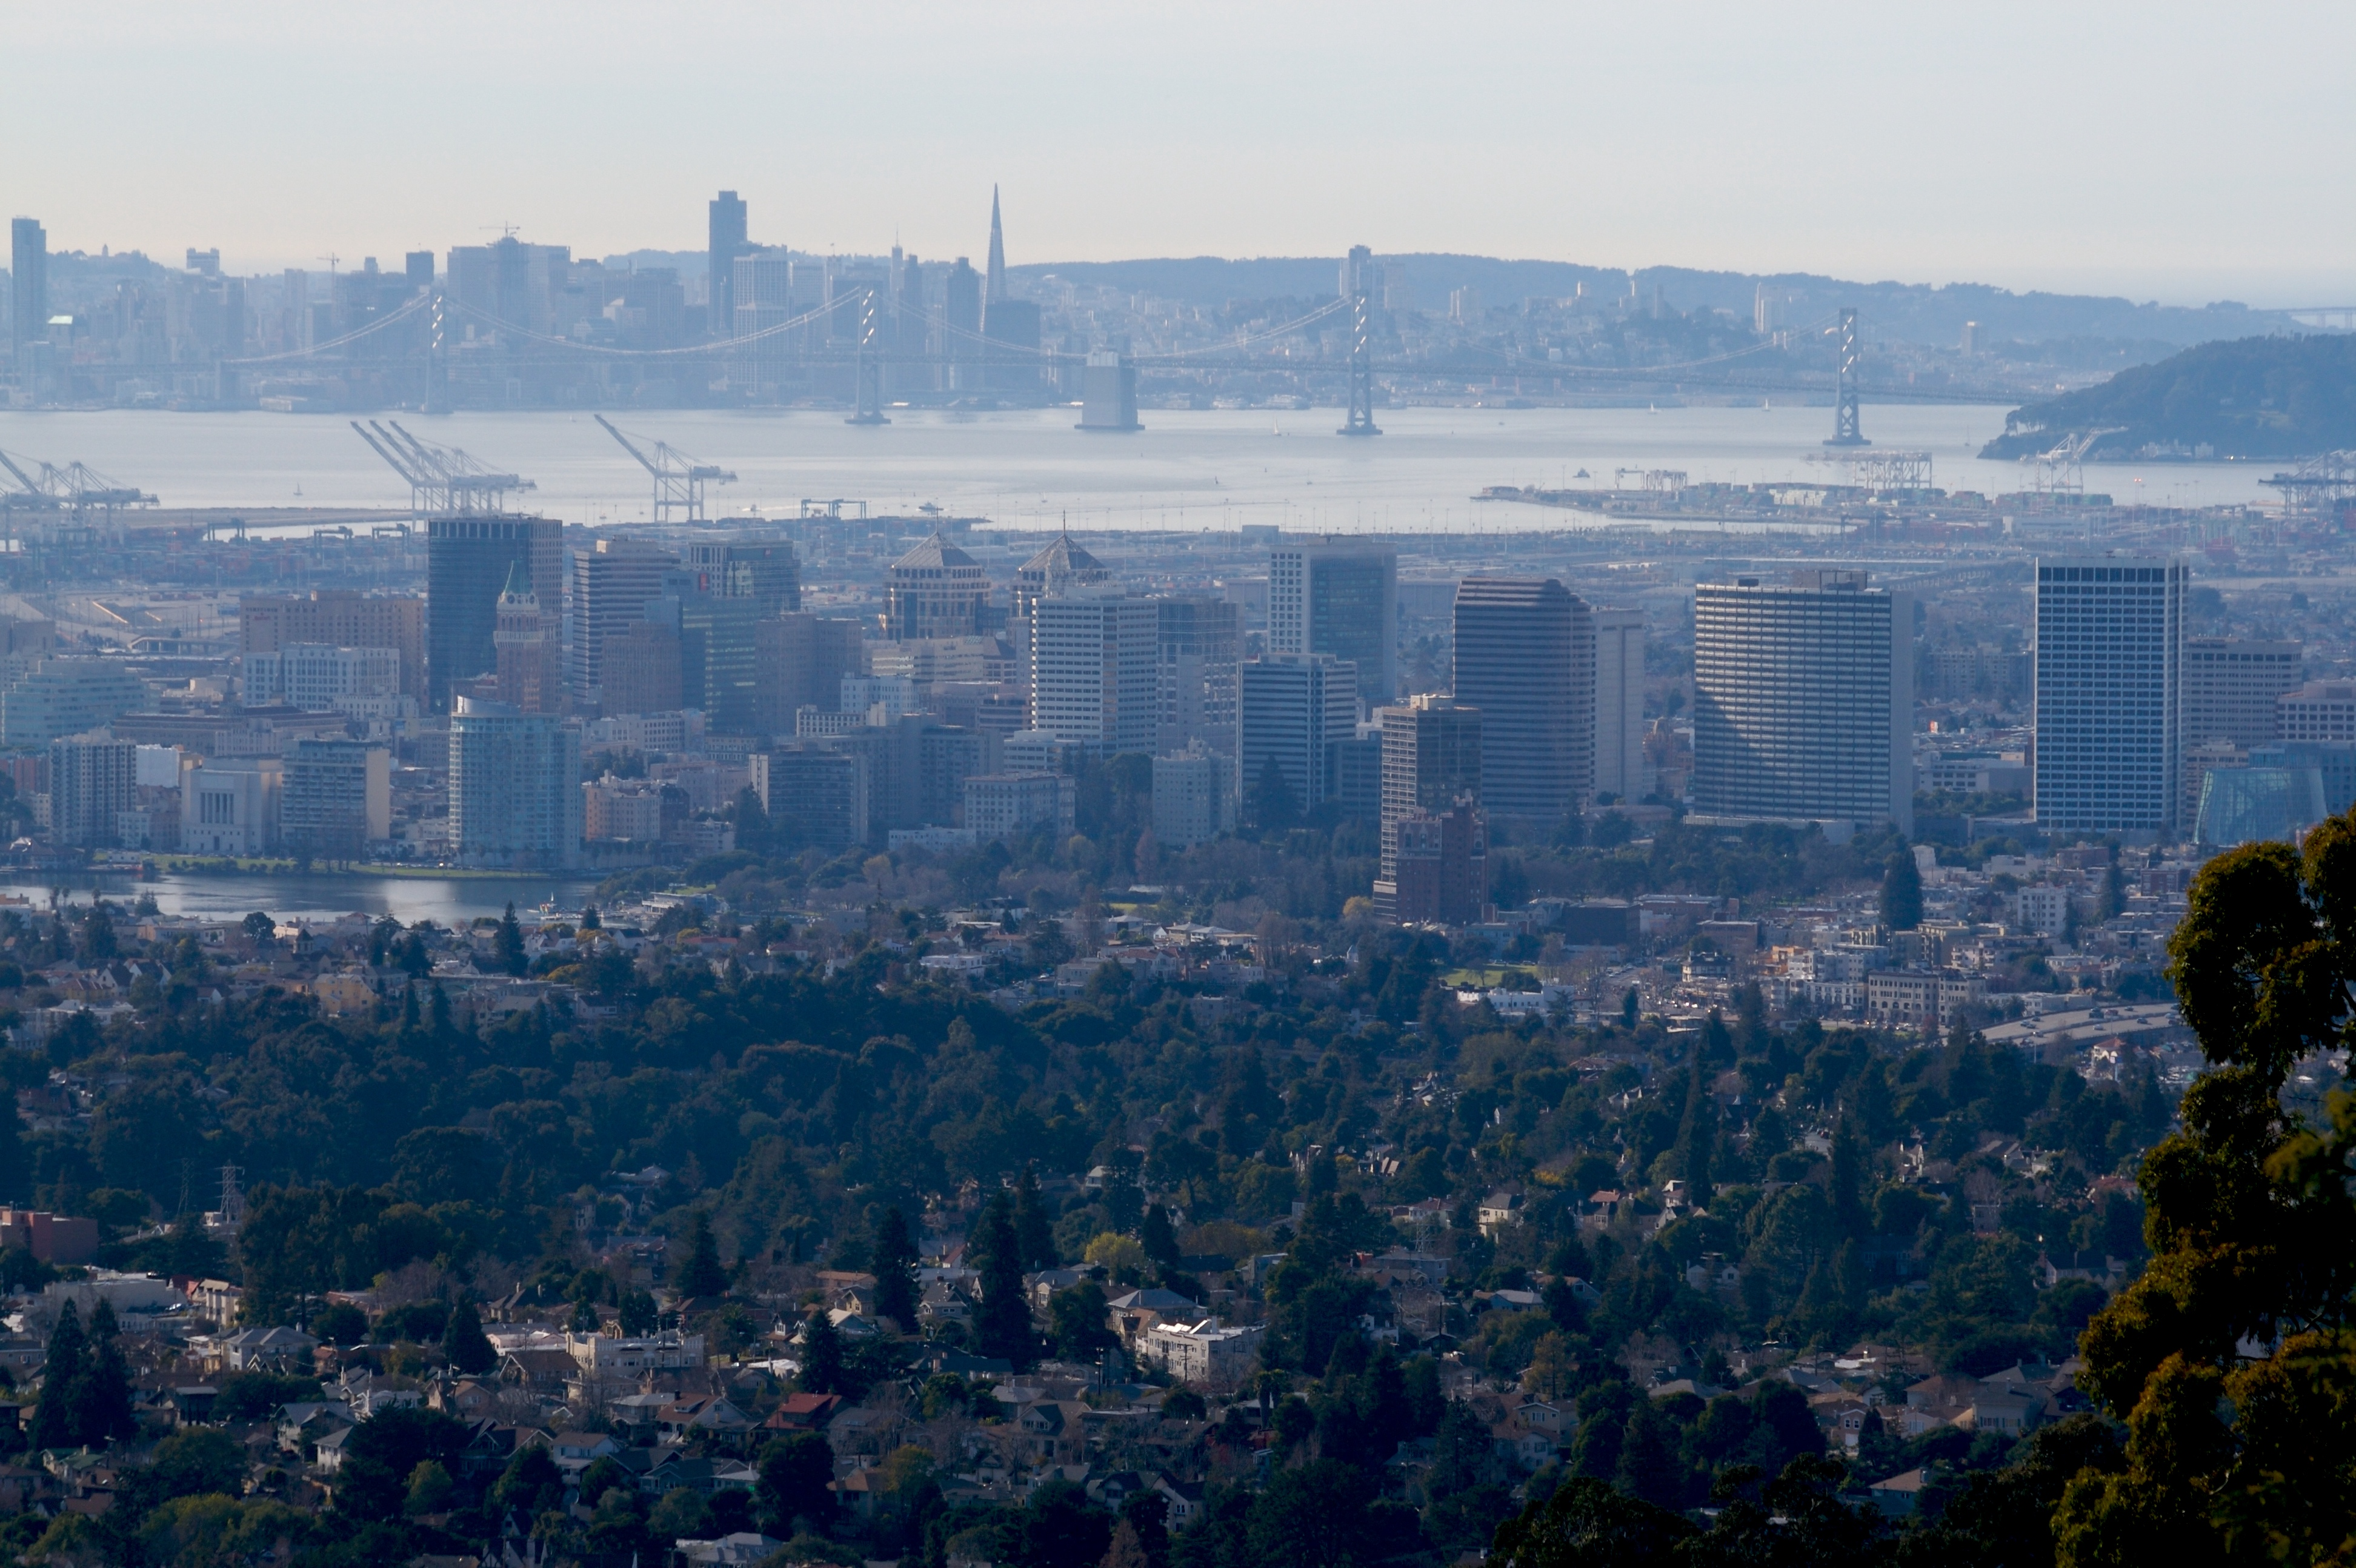 A photo of Oakland taken from the hills, facing San Francisco